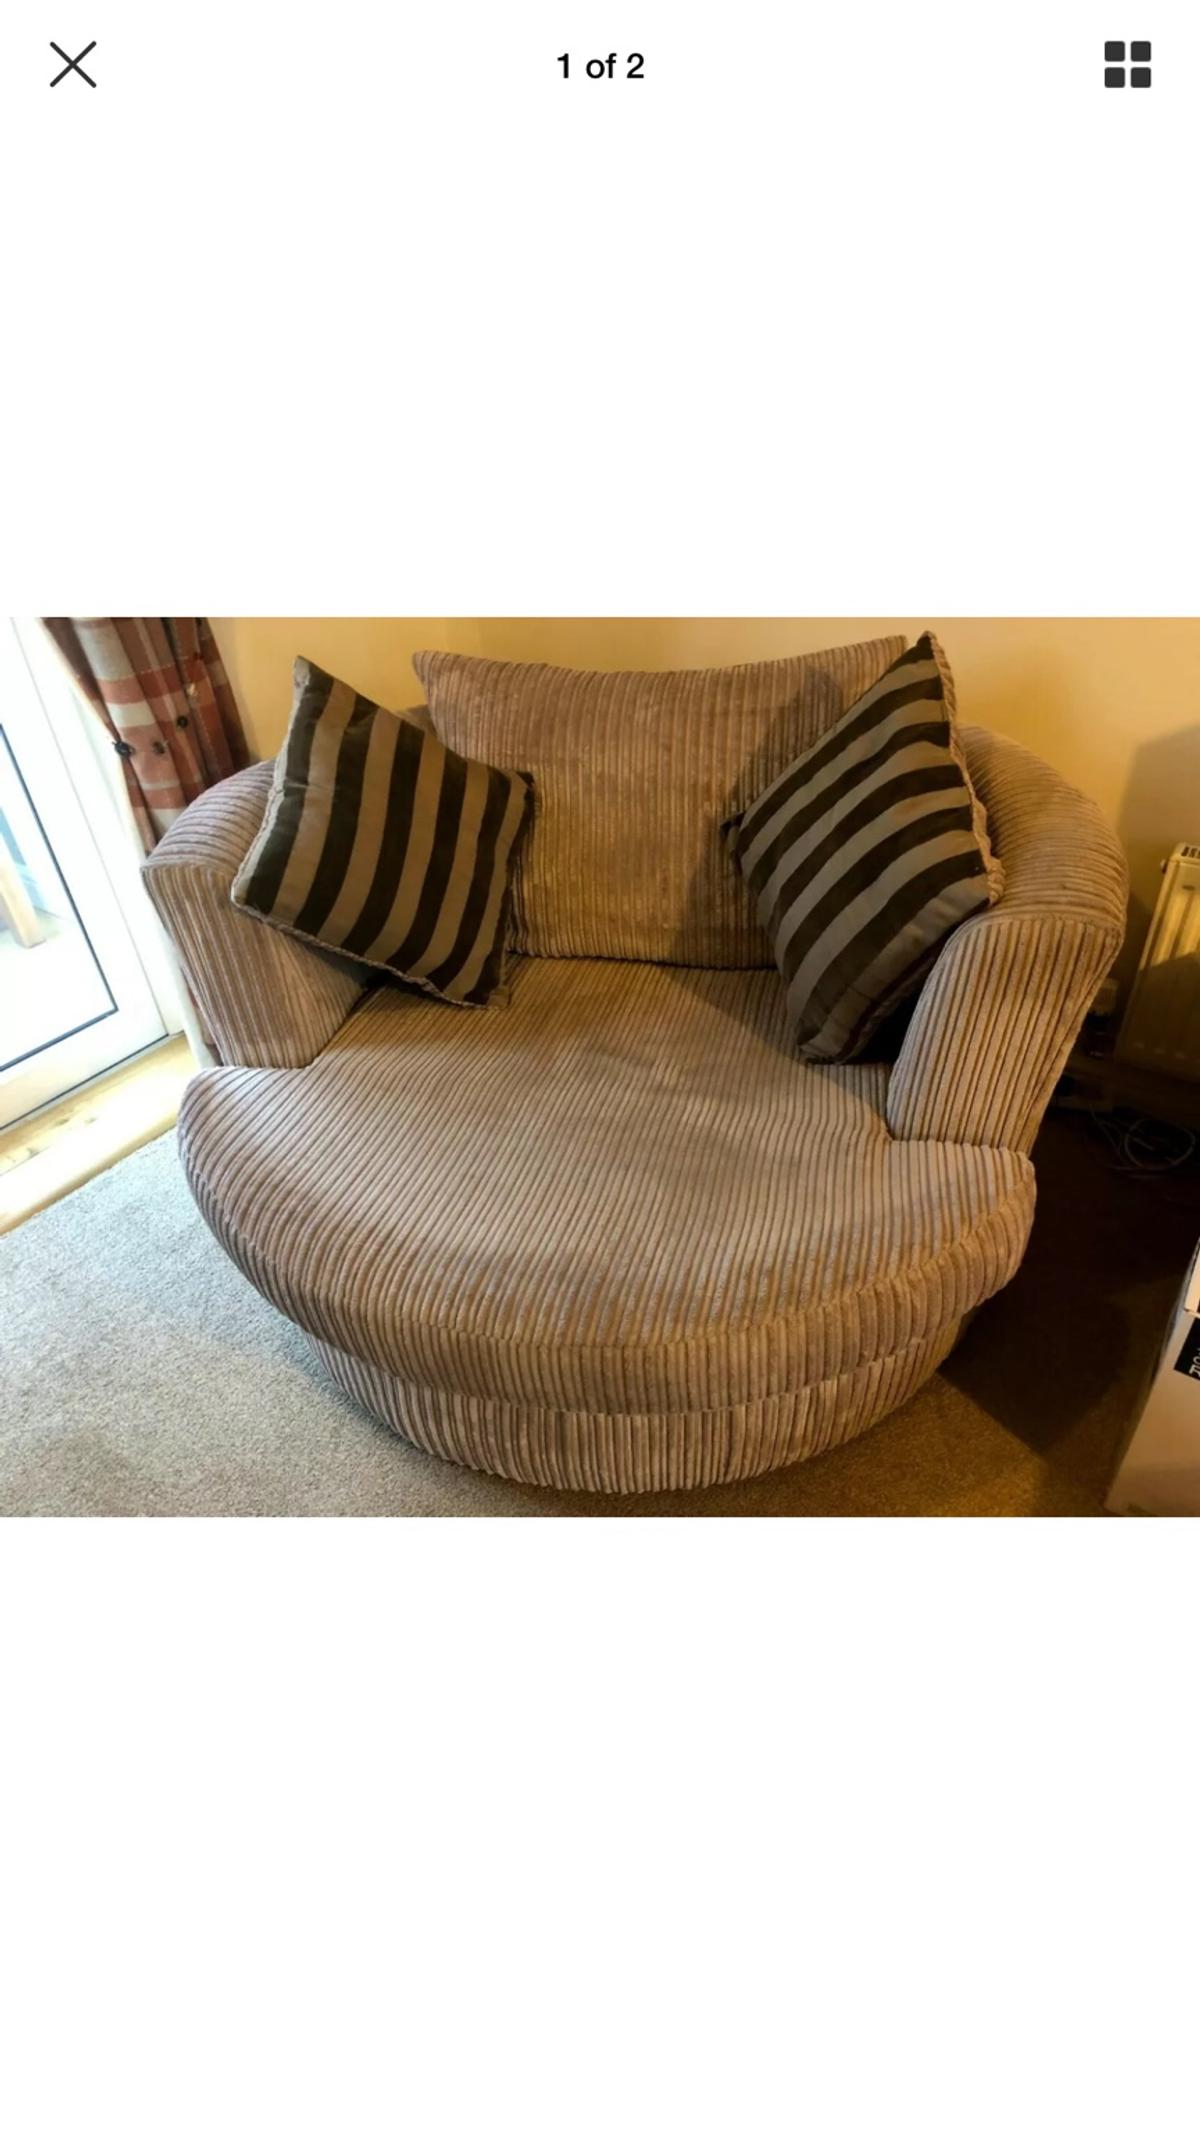 Swivel cuddle chair in Gillingham for £50.00 for sale | Shpock